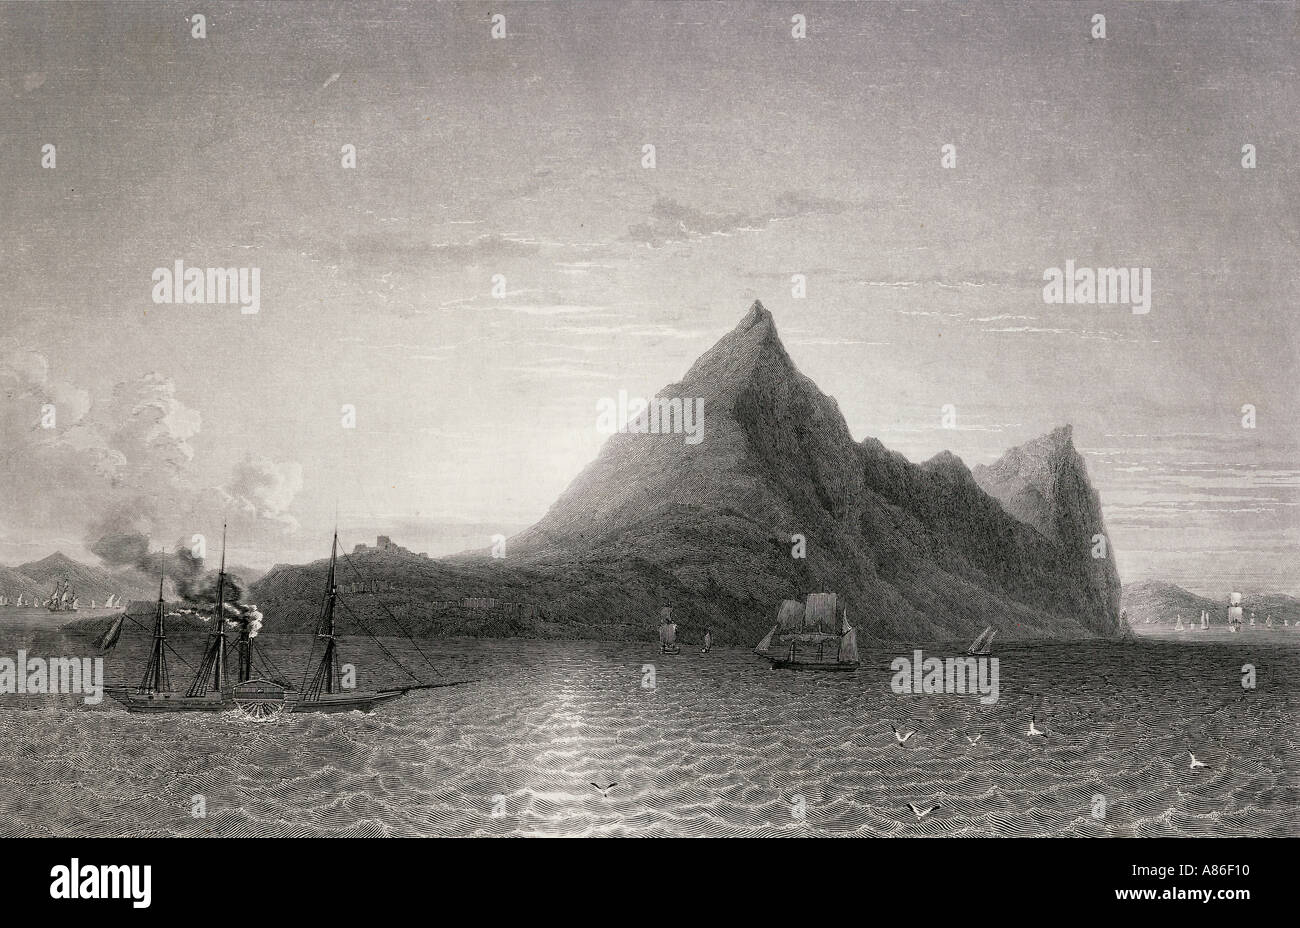 Gibraltar with steam ship and sailing ship, 19th century. - Stock Image